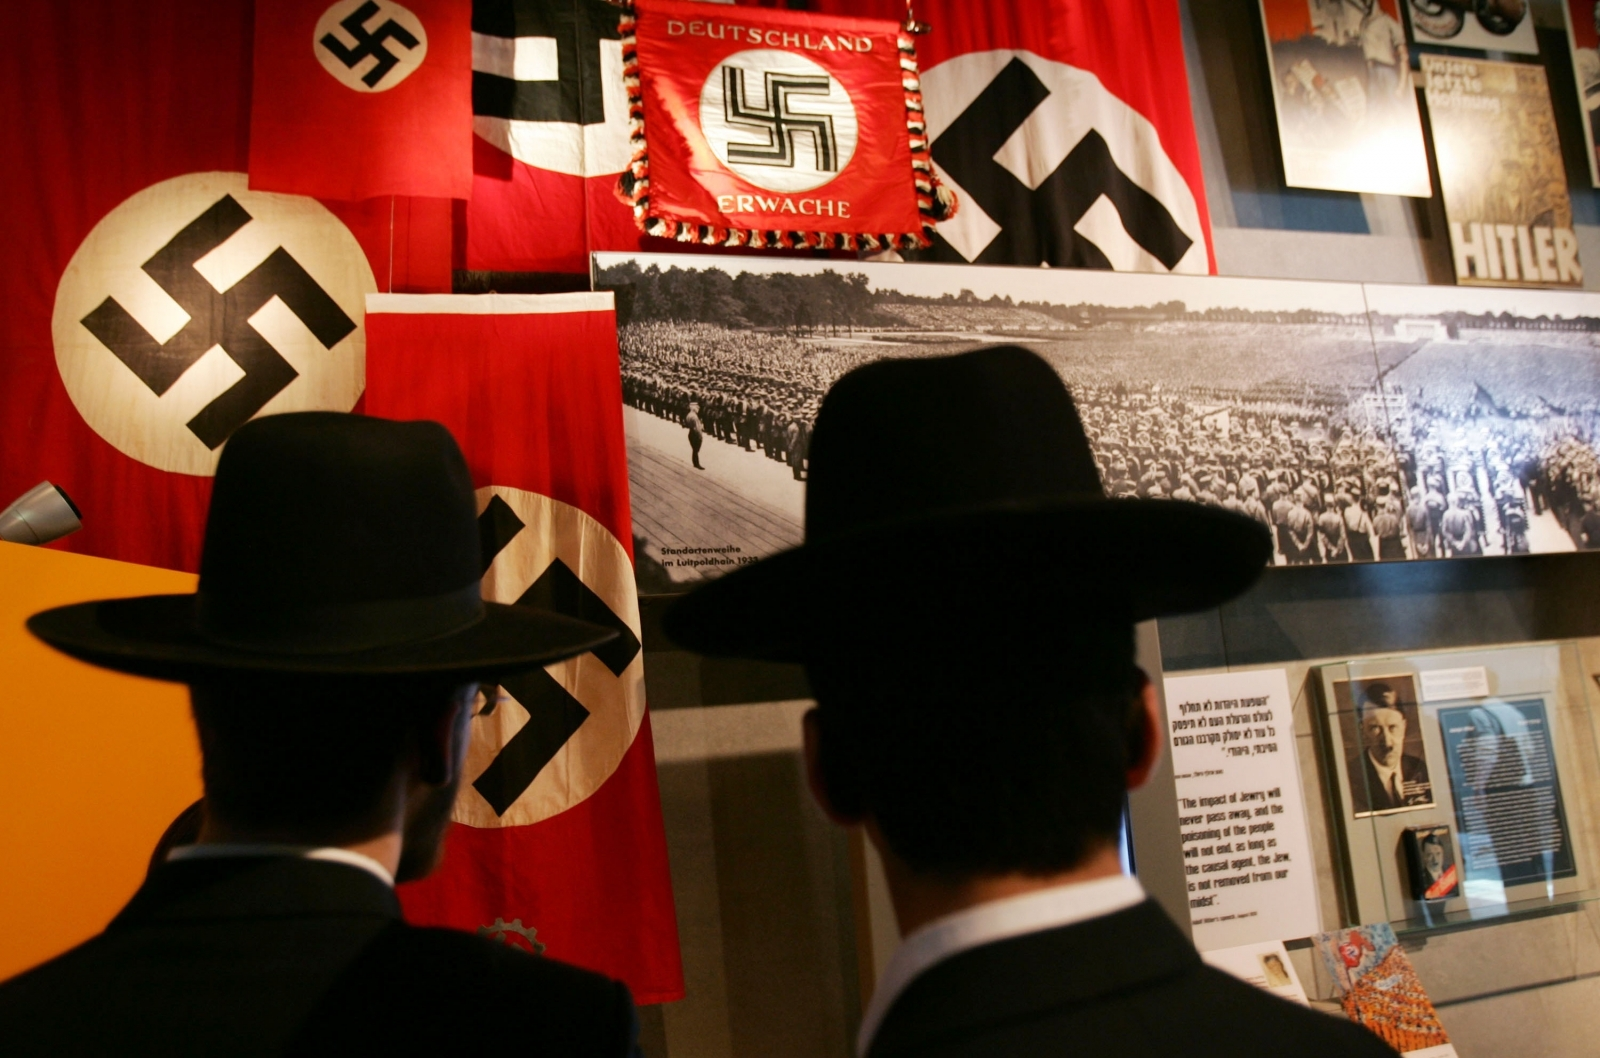 Jews in front of Swastikas